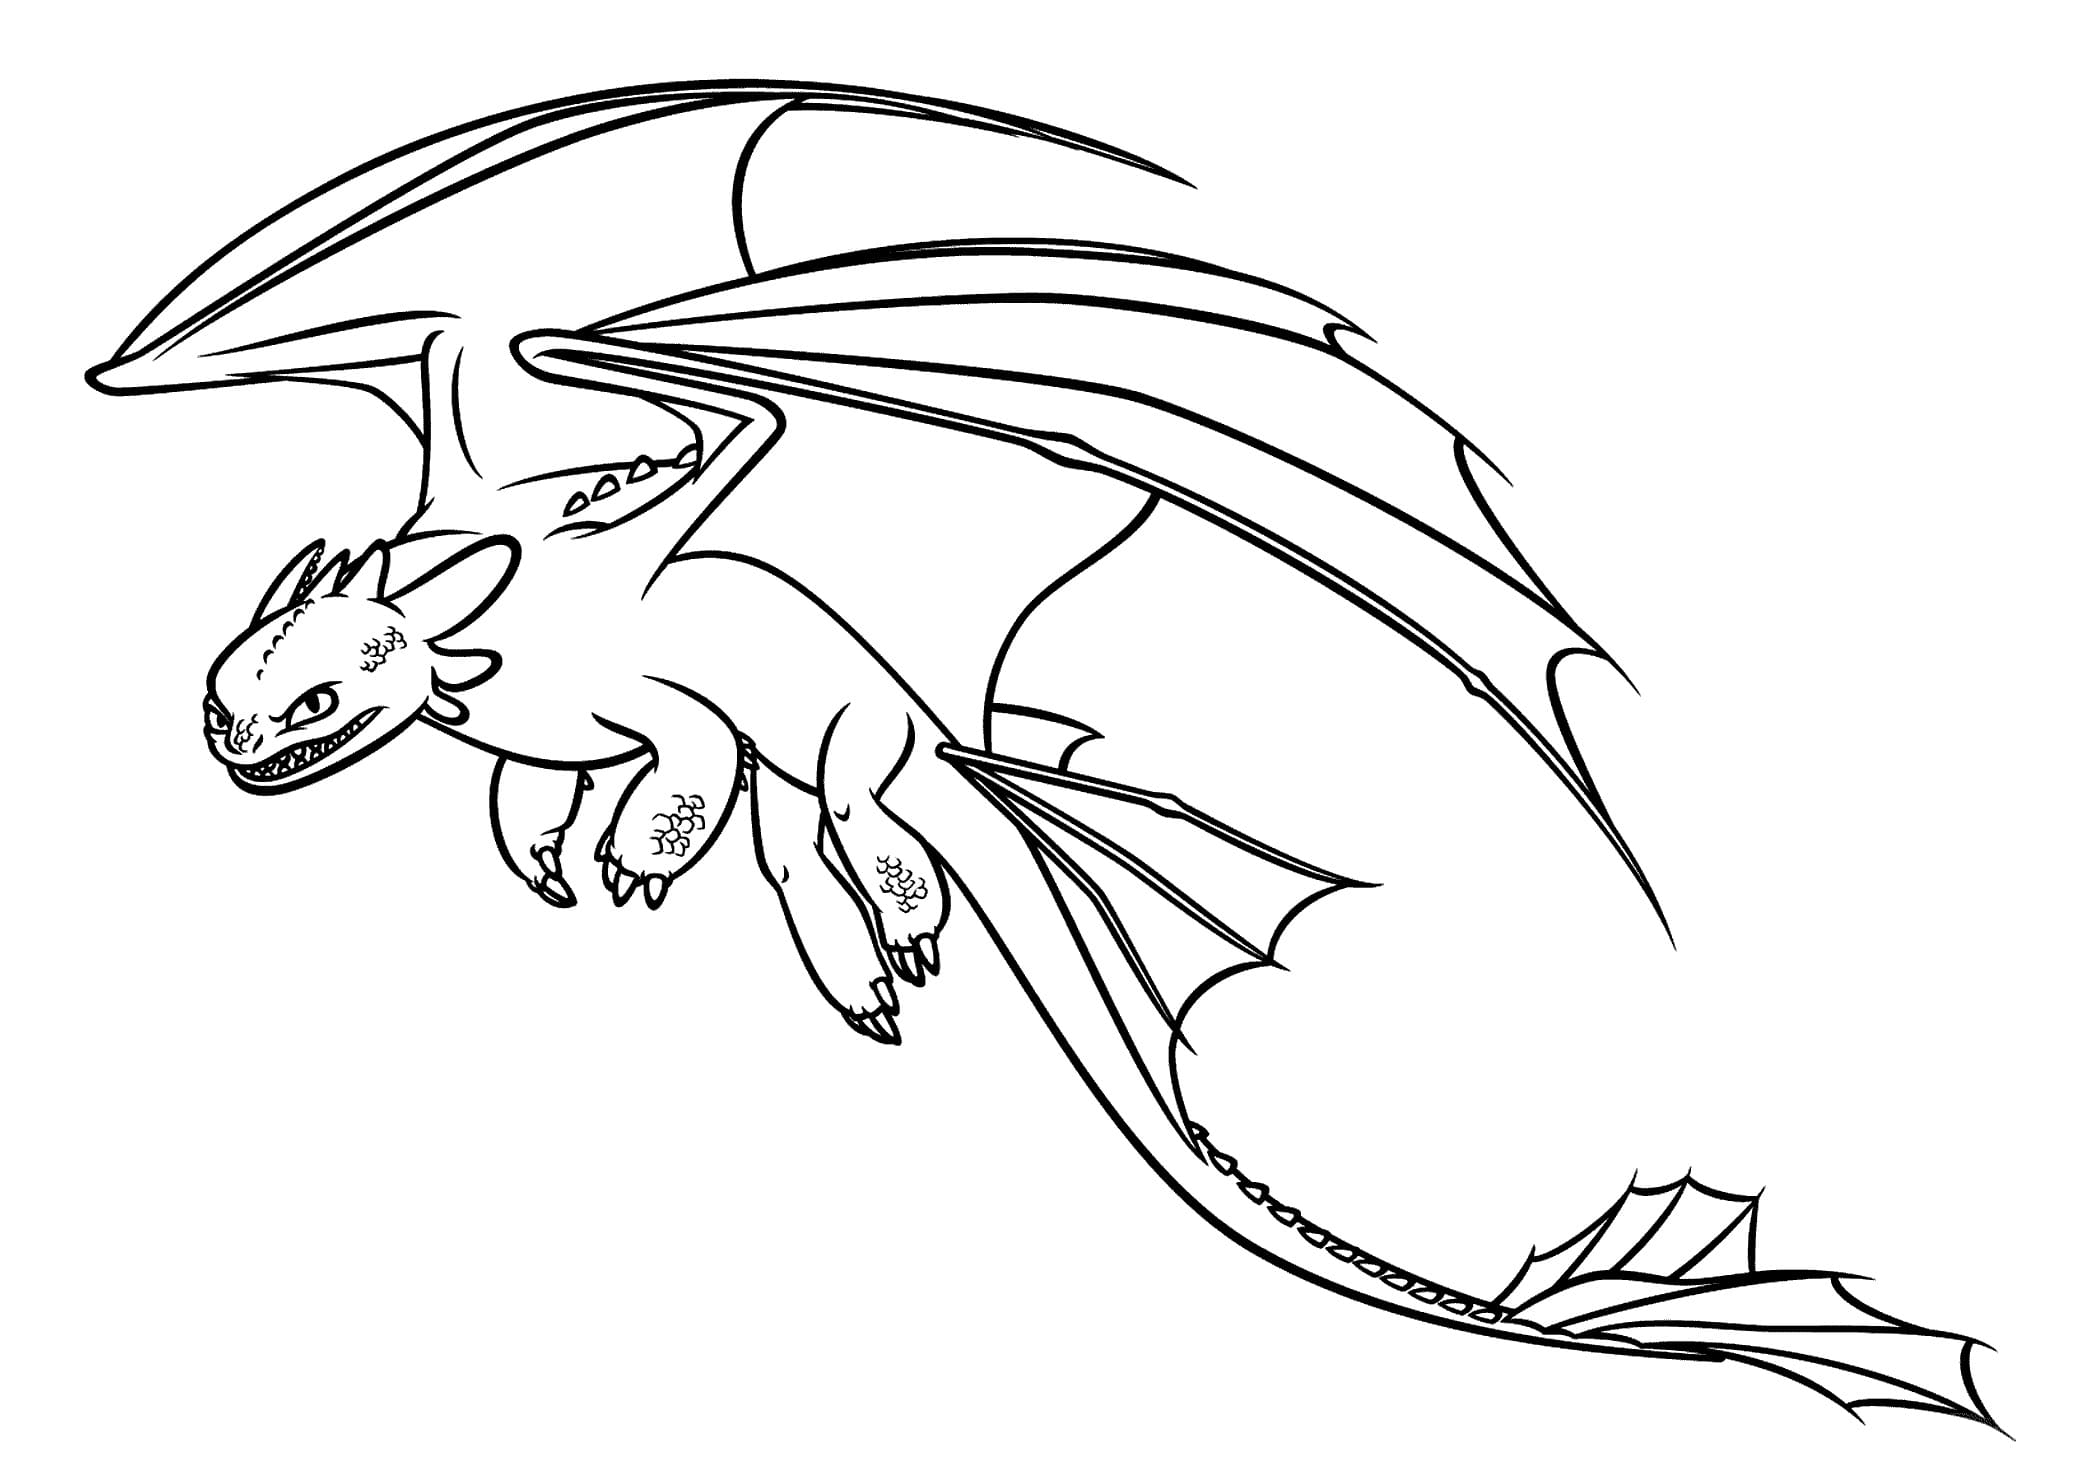 Coloring Pages of Dragons. 100 Black and White Images for Free